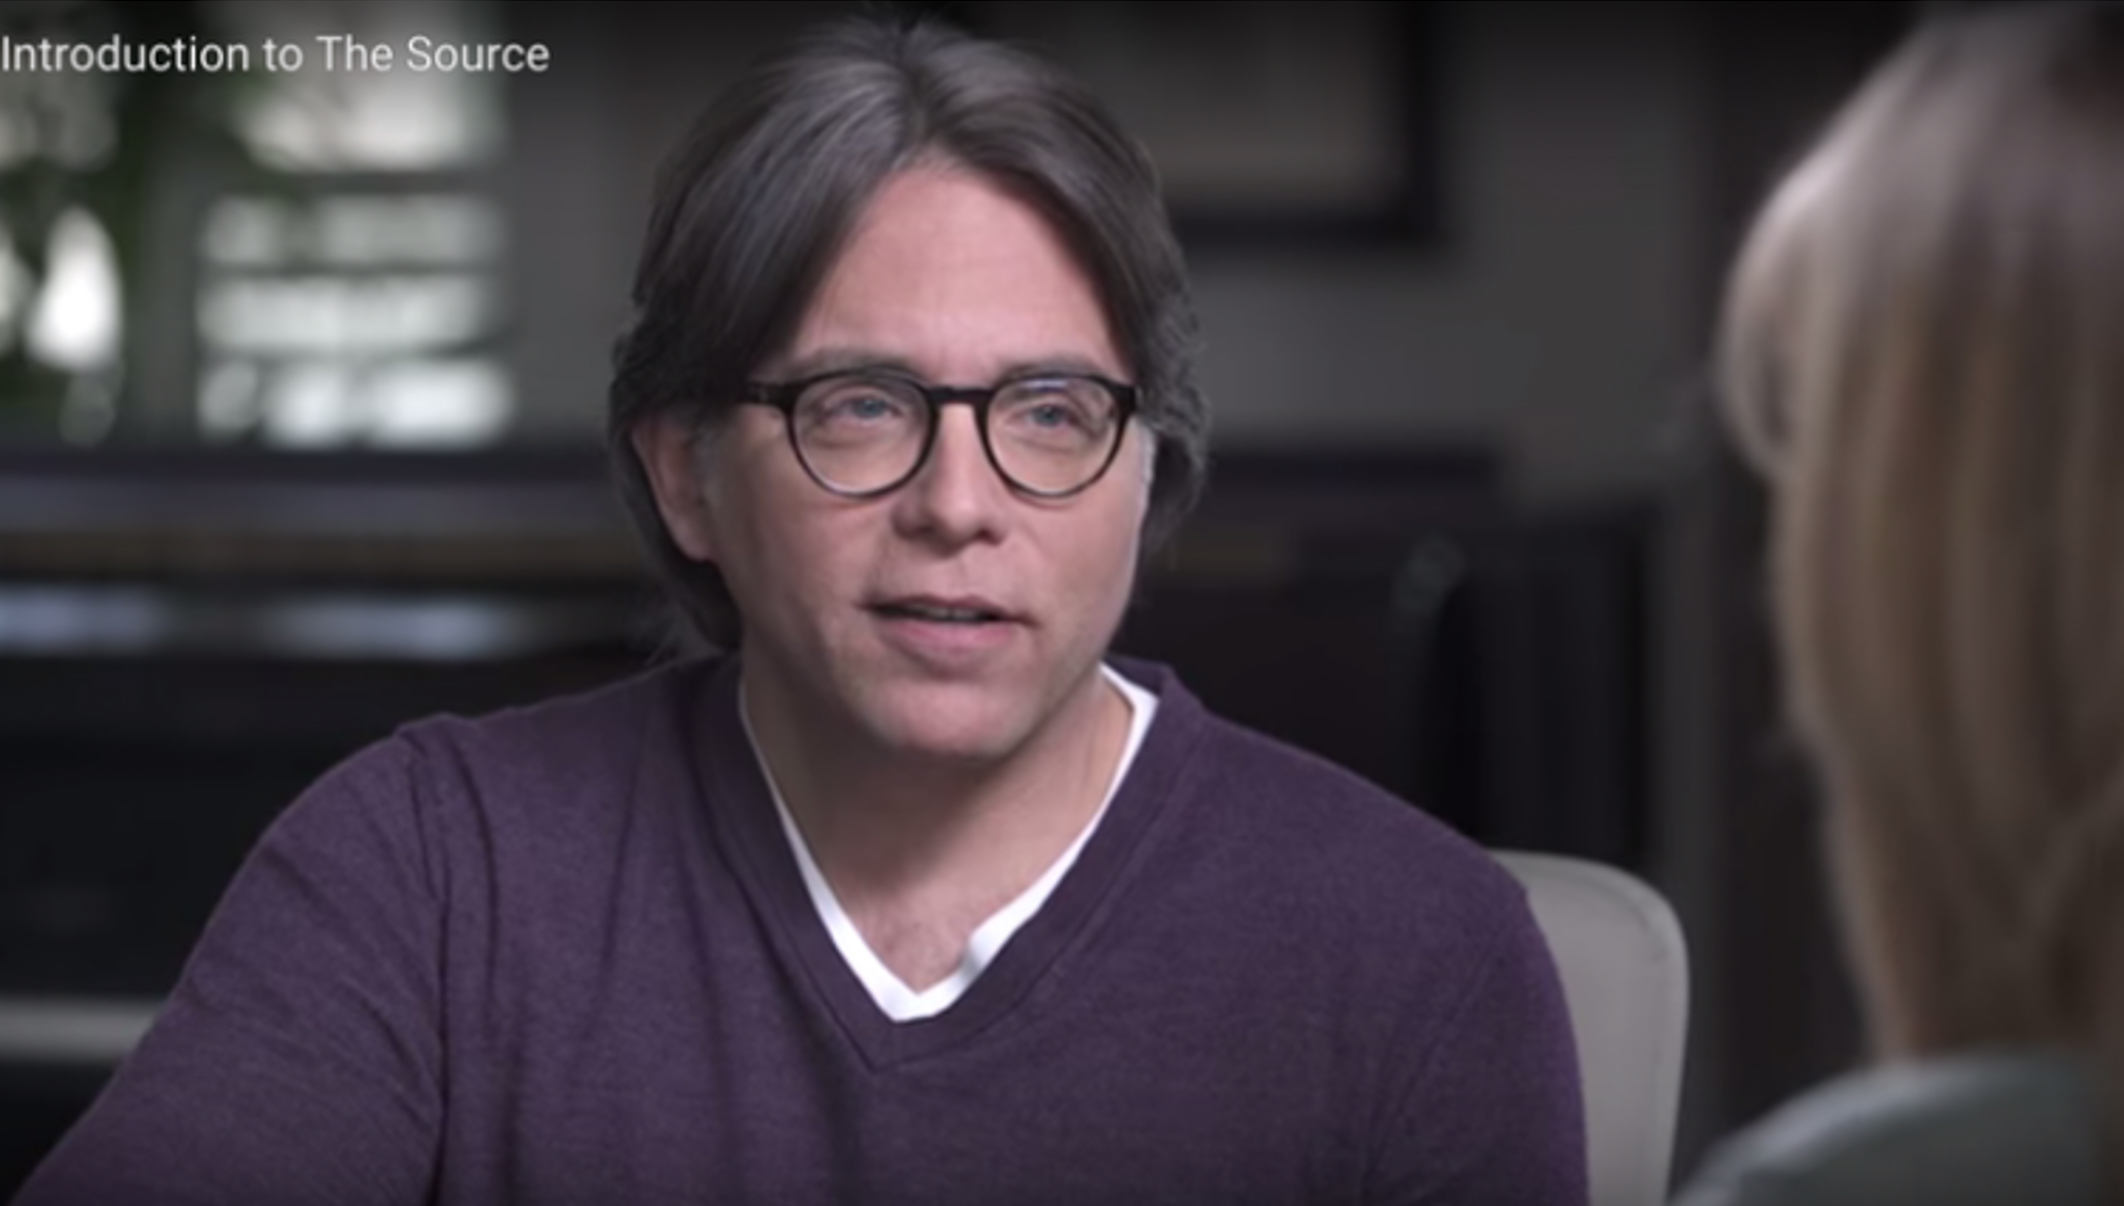 Whippings, Cages And Naked Photos: More Salacious Allegations Emerge In NXIVM Sex Cult Trial